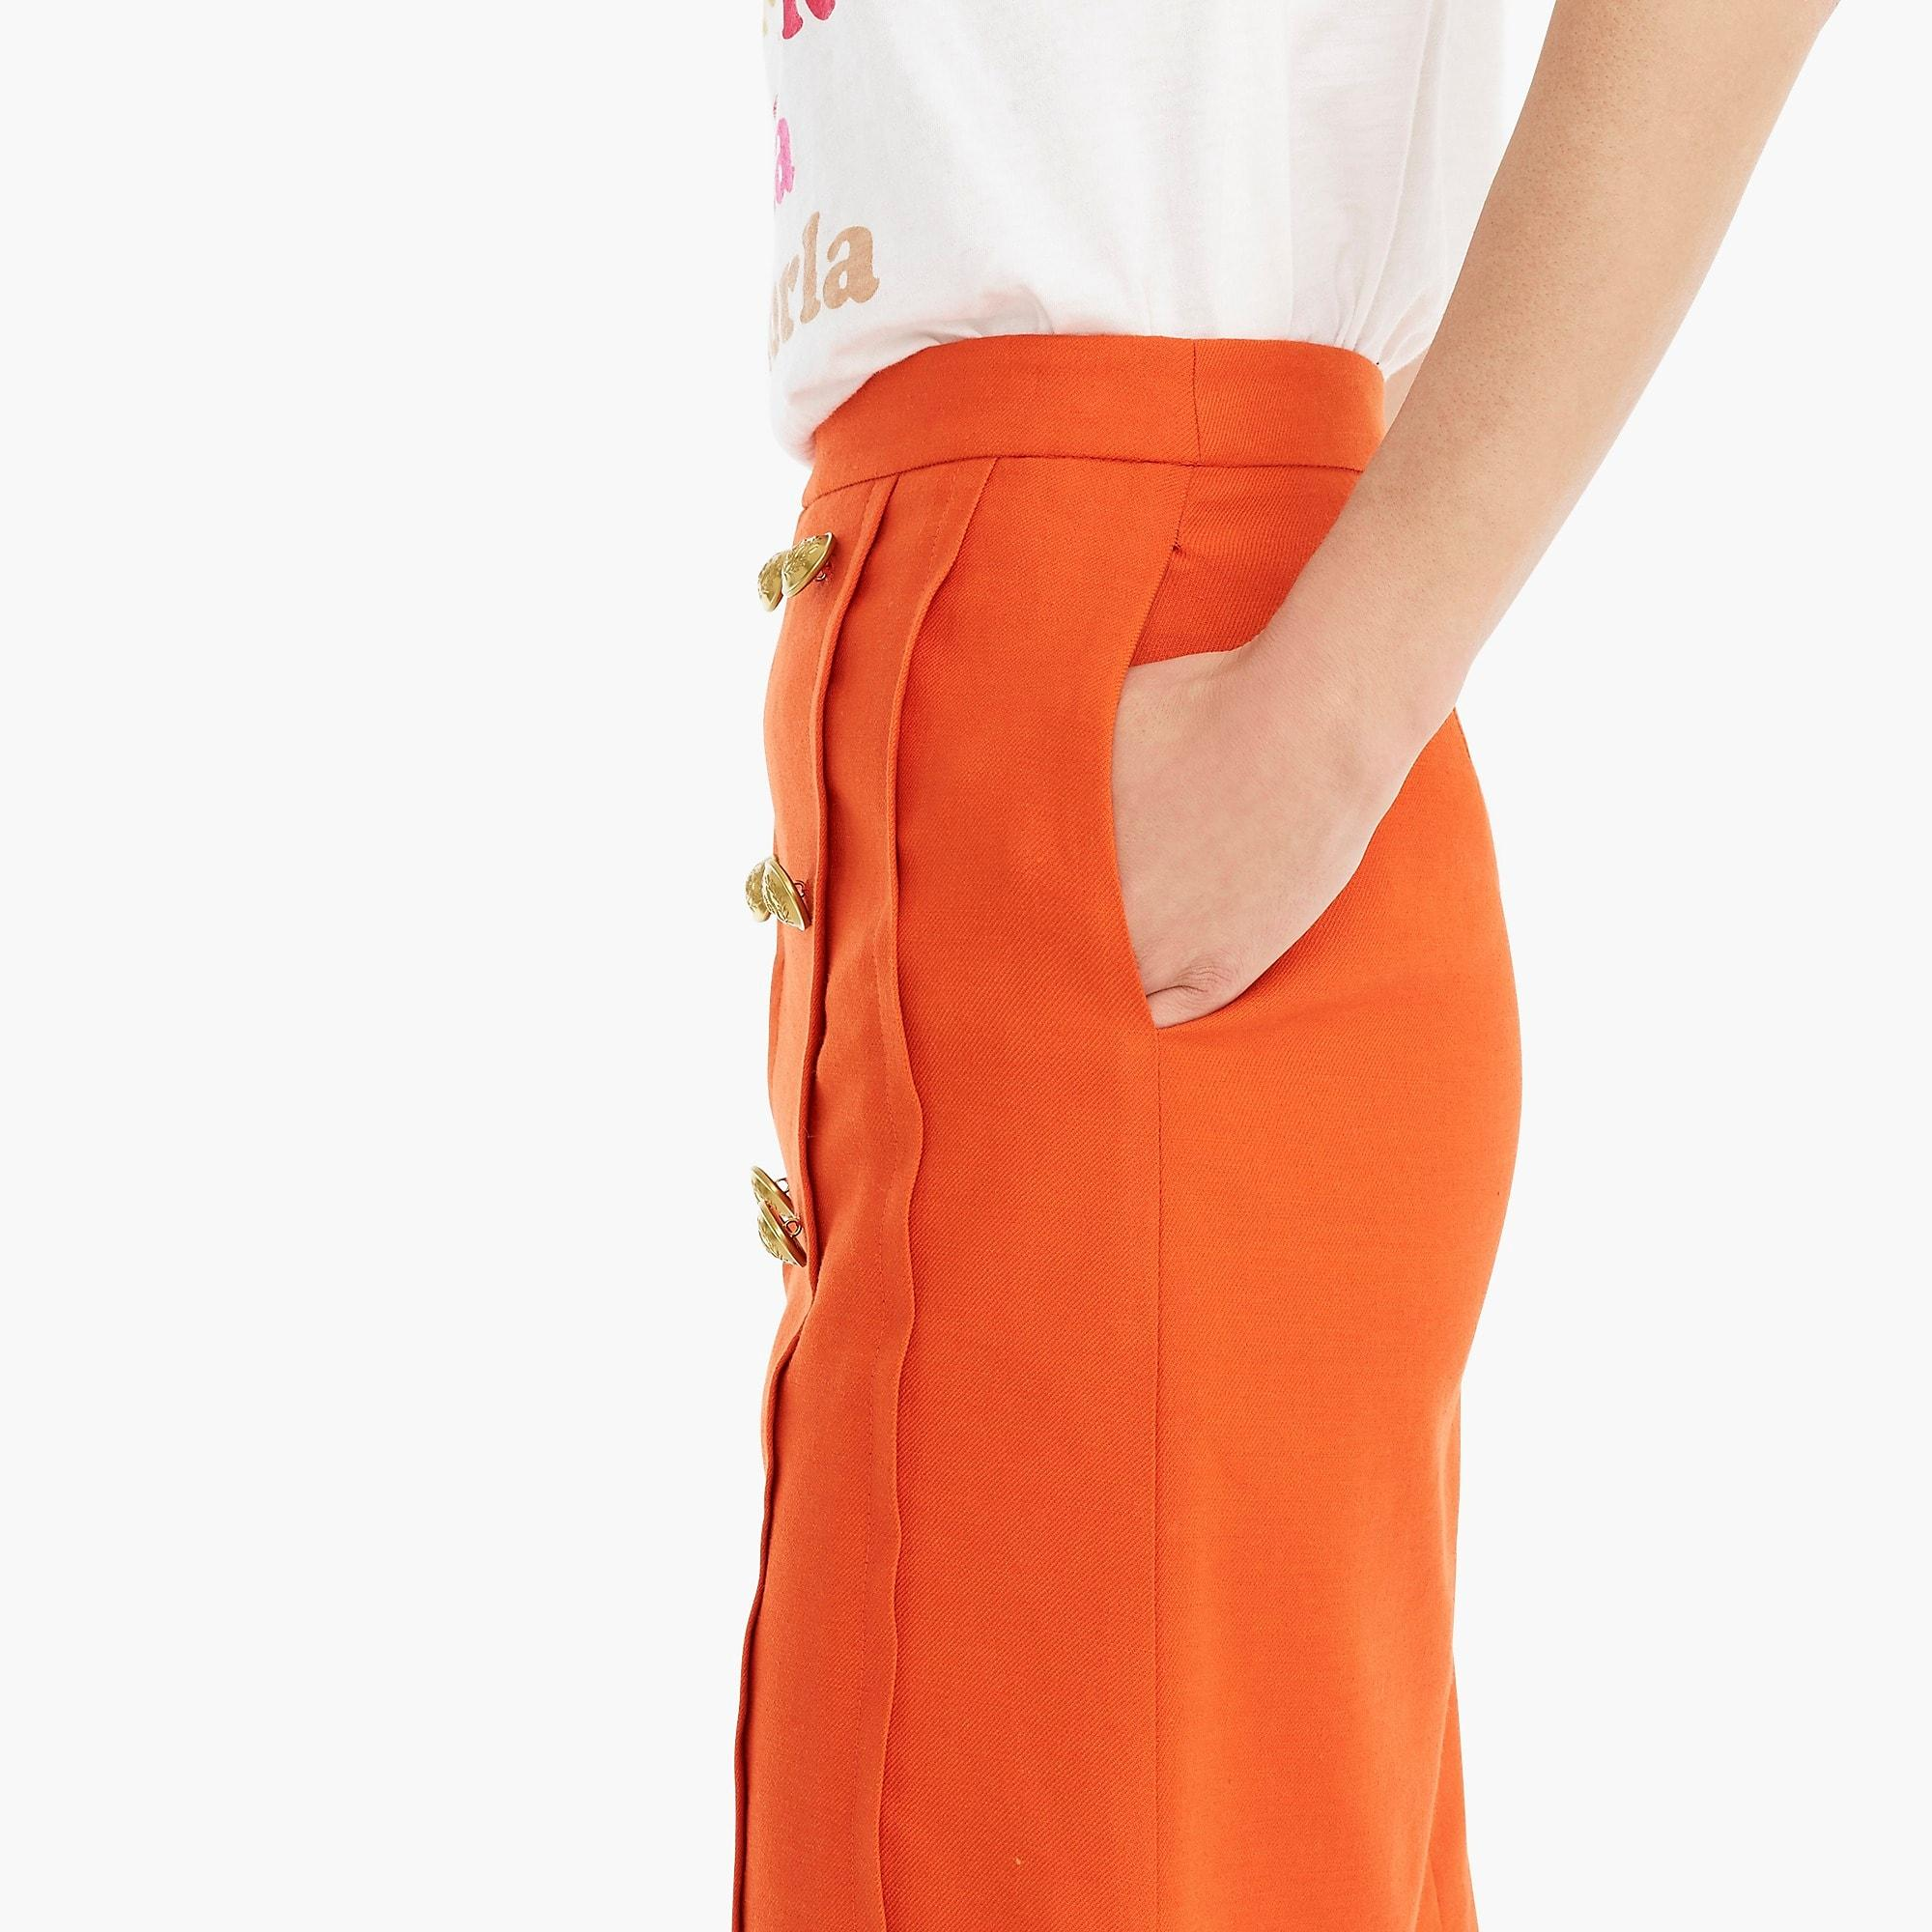 4dea02a0b J.Crew - Orange Tall Pleated-front Sailor Skirt In Stretch Linen - Lyst.  View fullscreen